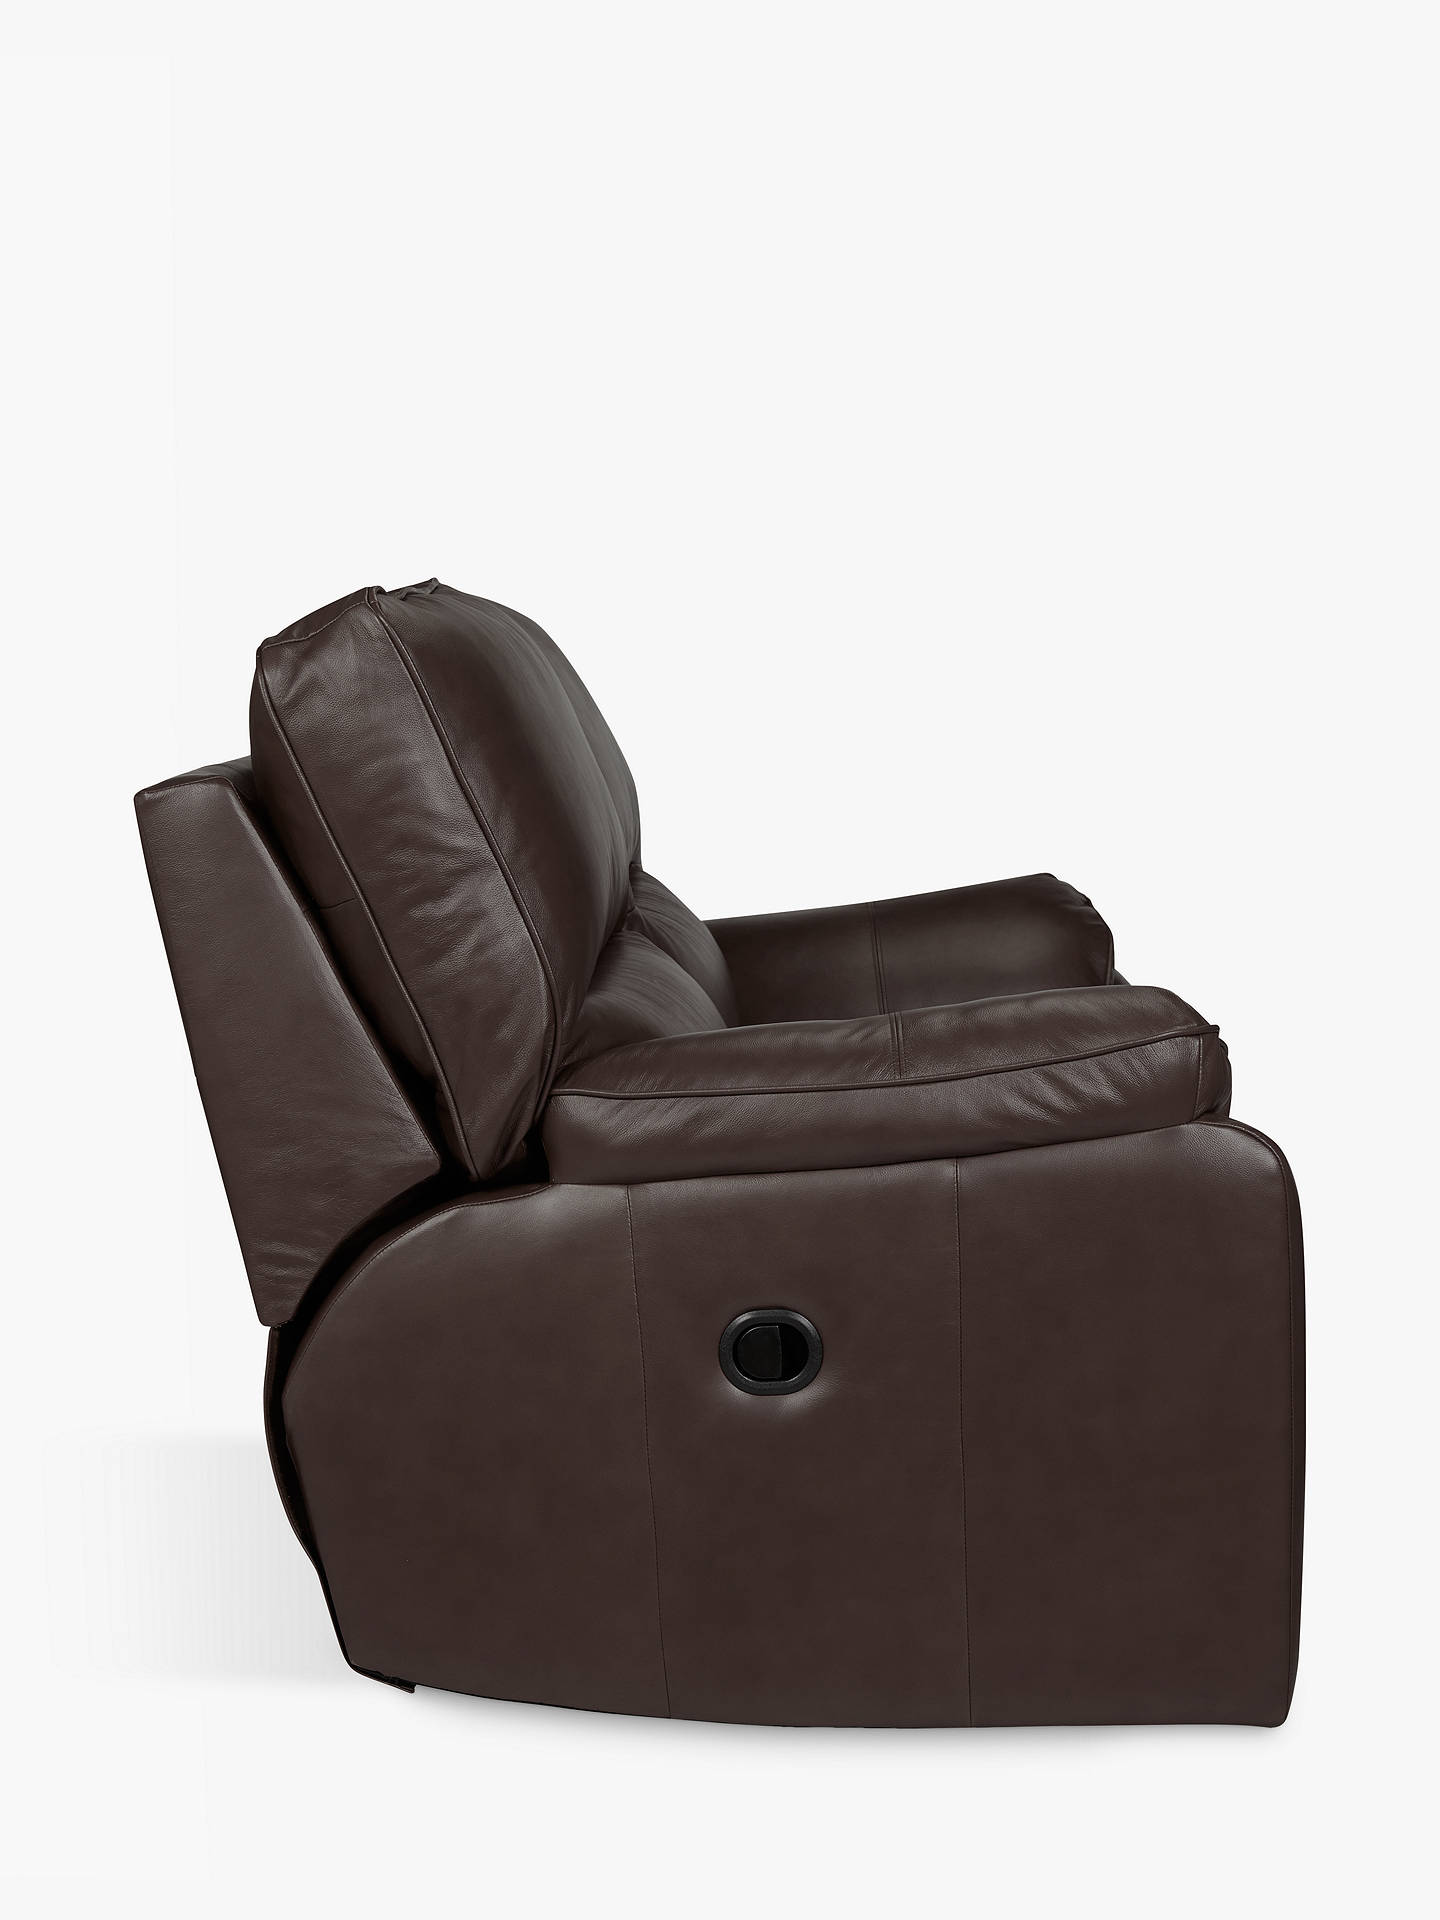 BuyJohn Lewis & Partners Carlisle Leather Power Recliner Medium 2 Seater Sofa, Demetra Charcoal Online at johnlewis.com